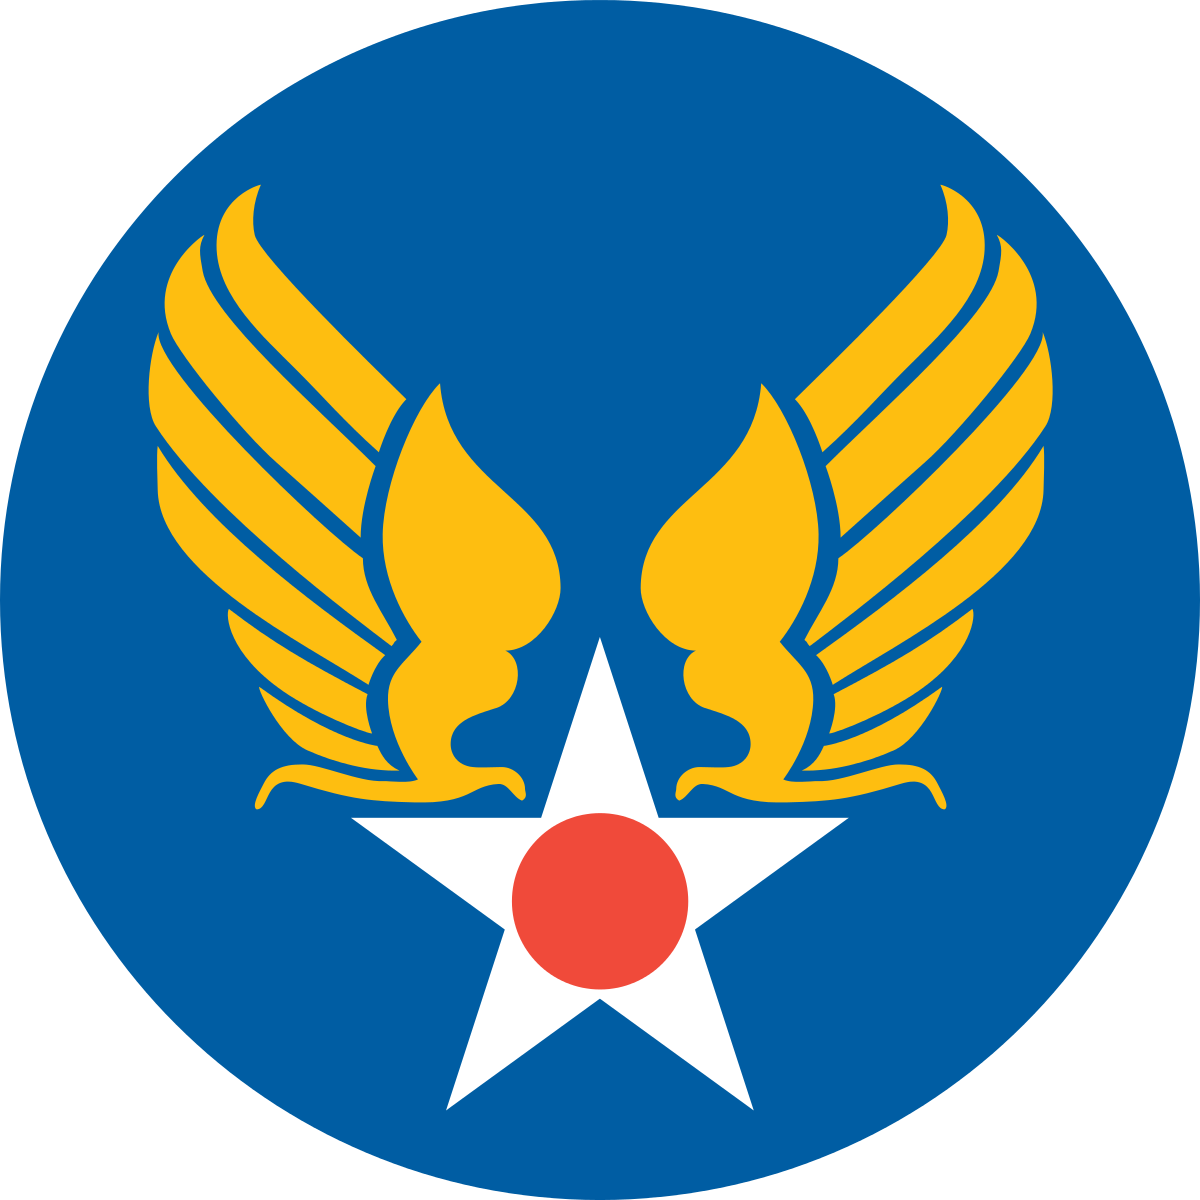 United States Army Air Forces.